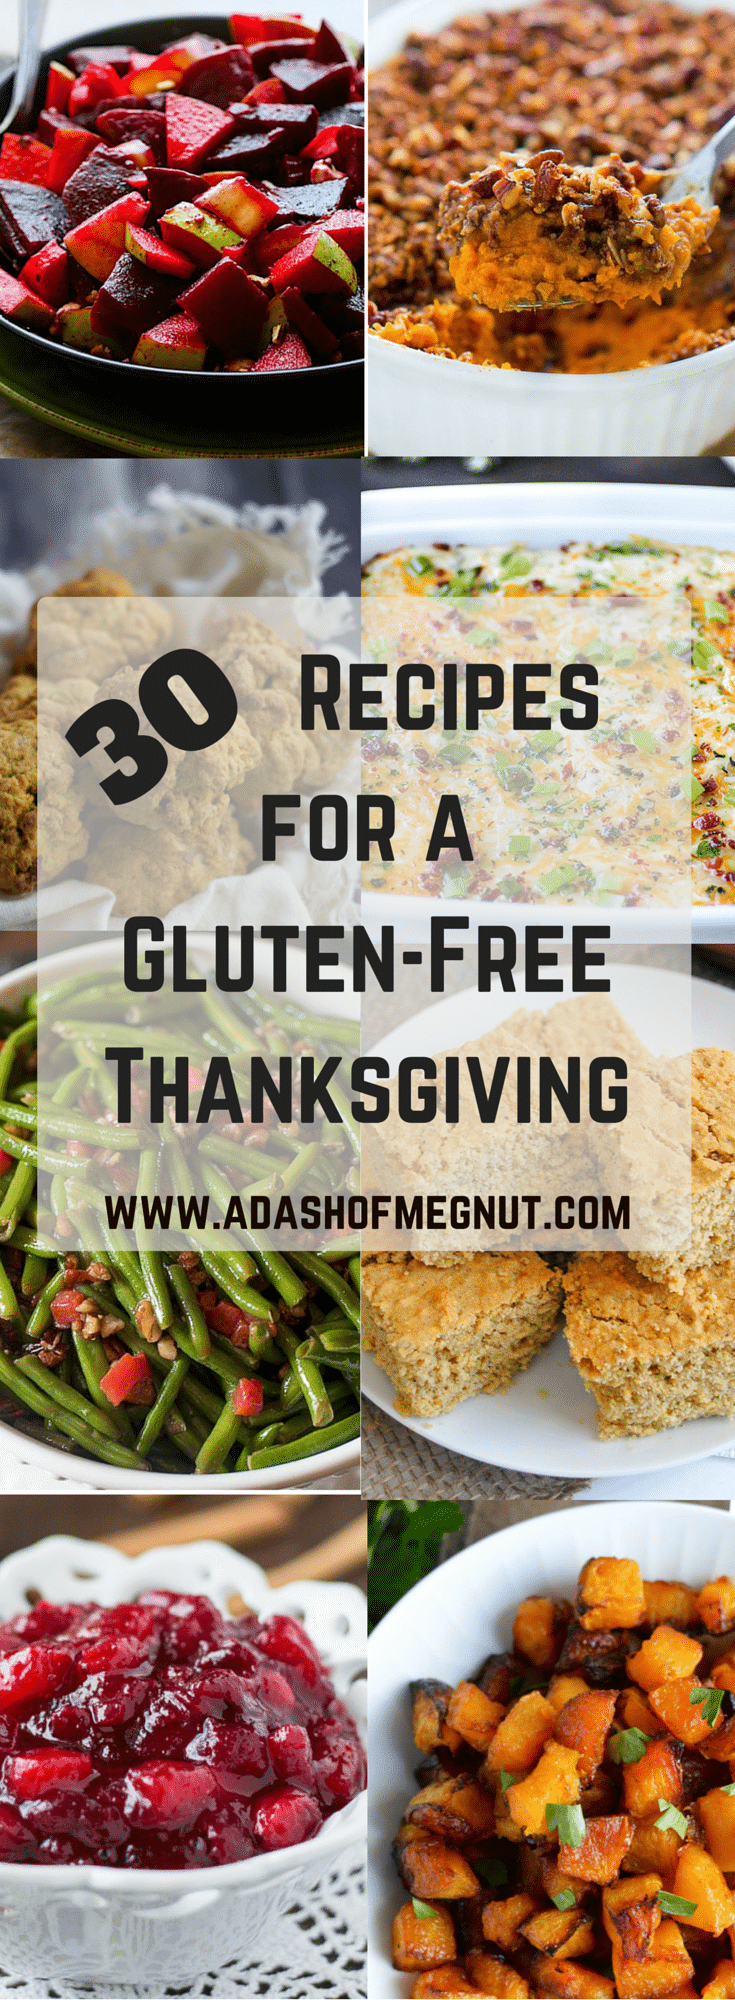 A collage of gluten-free recipes for Thanksgiving.